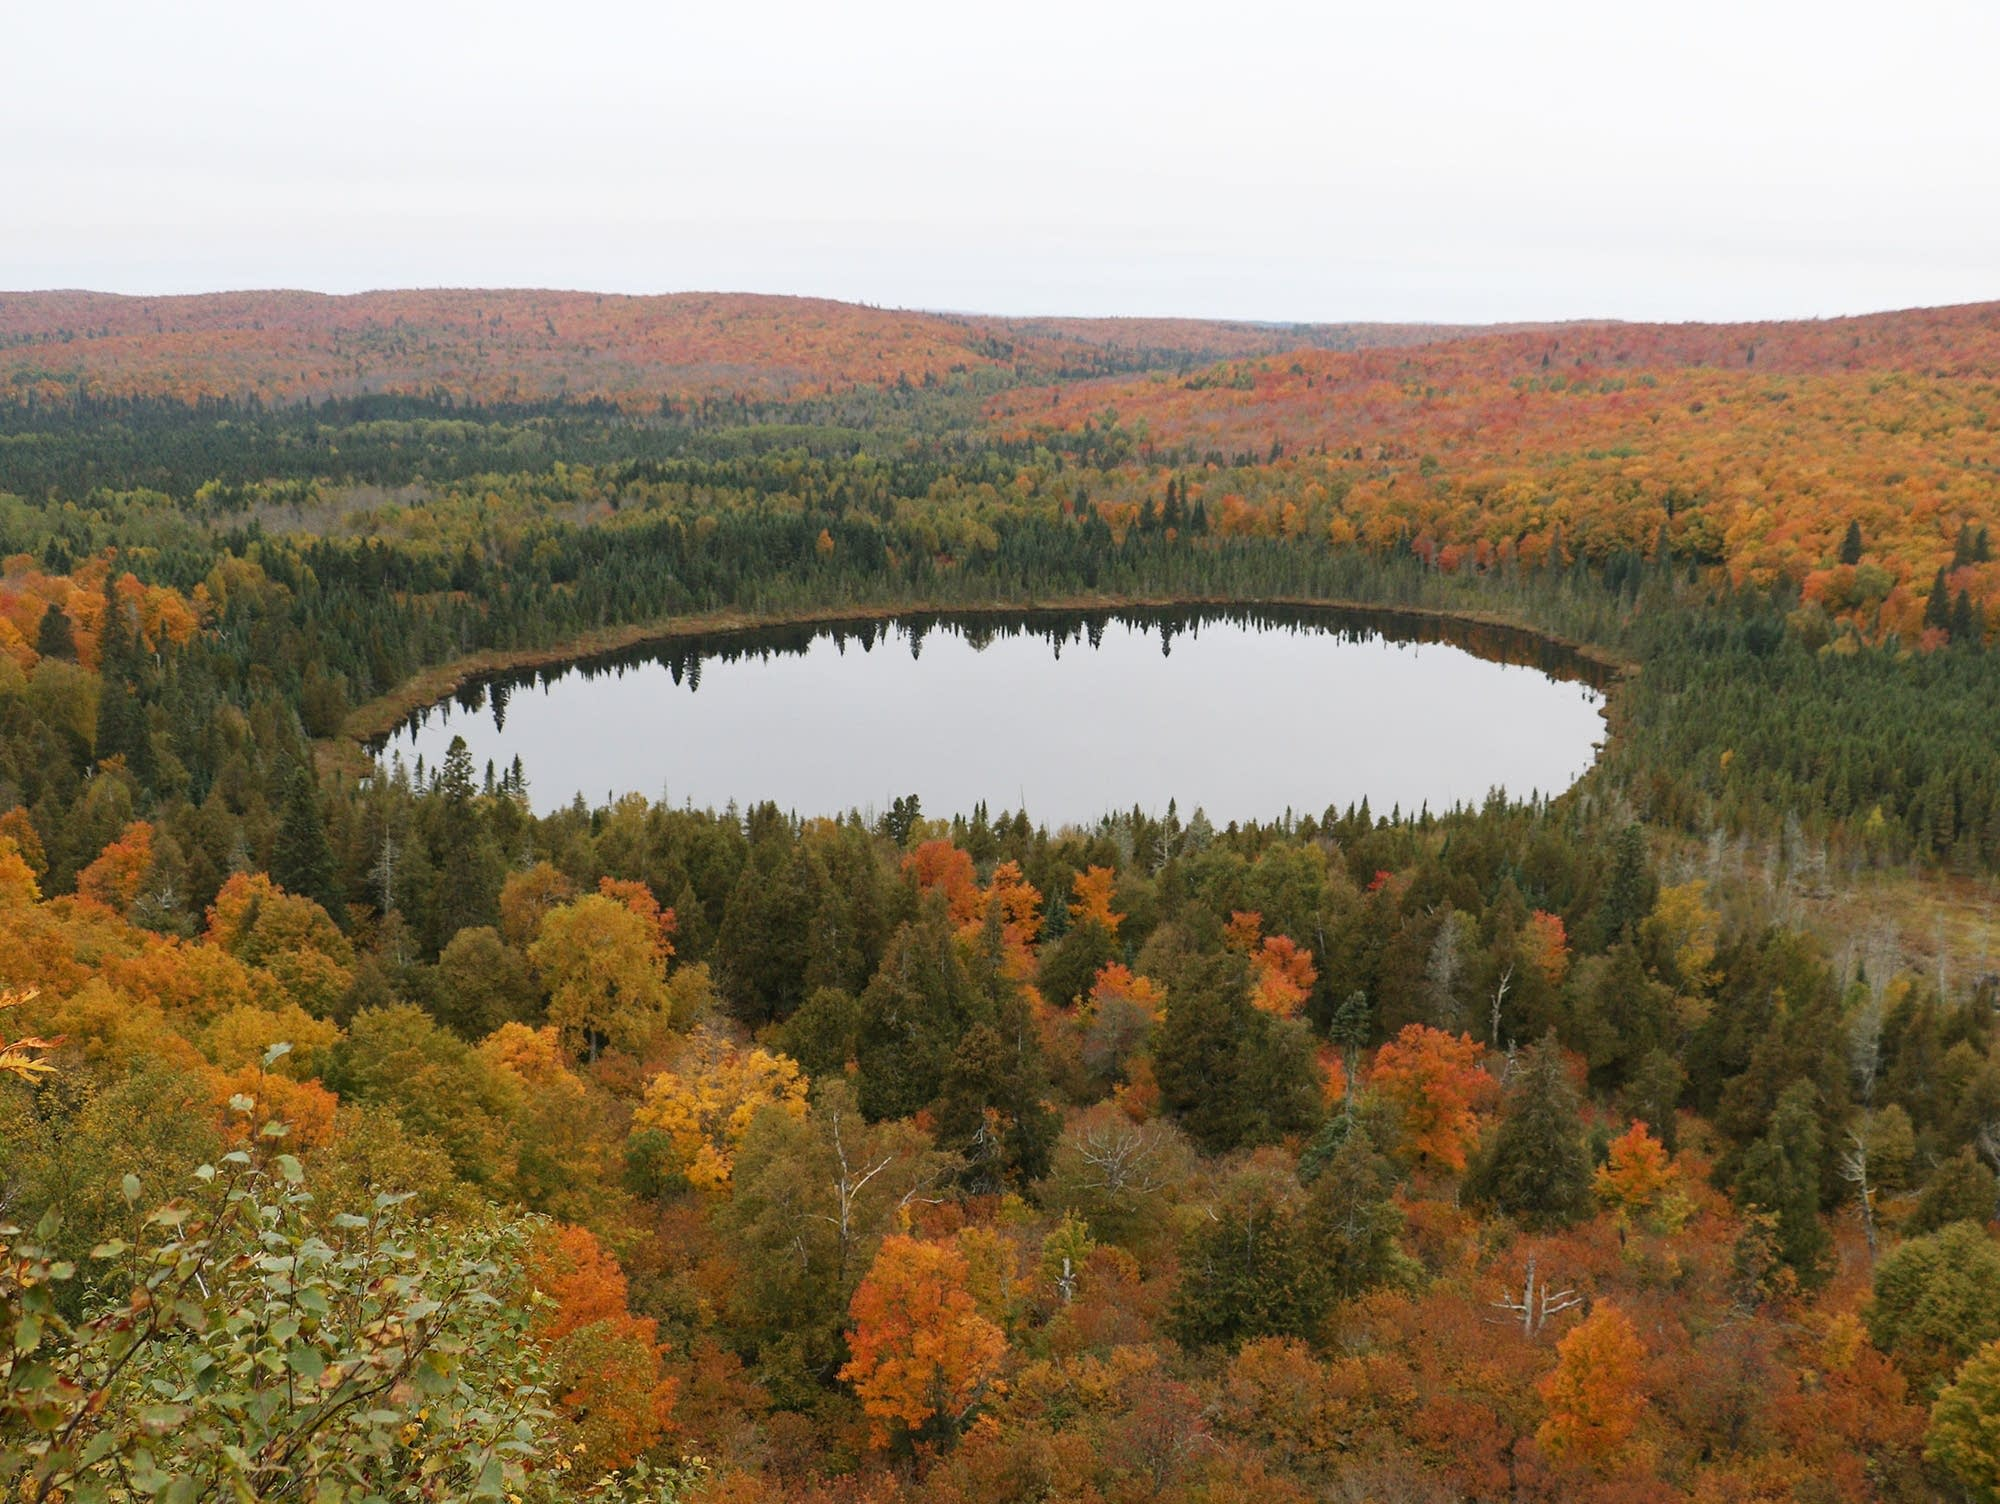 Fall colors in northern Minnesota